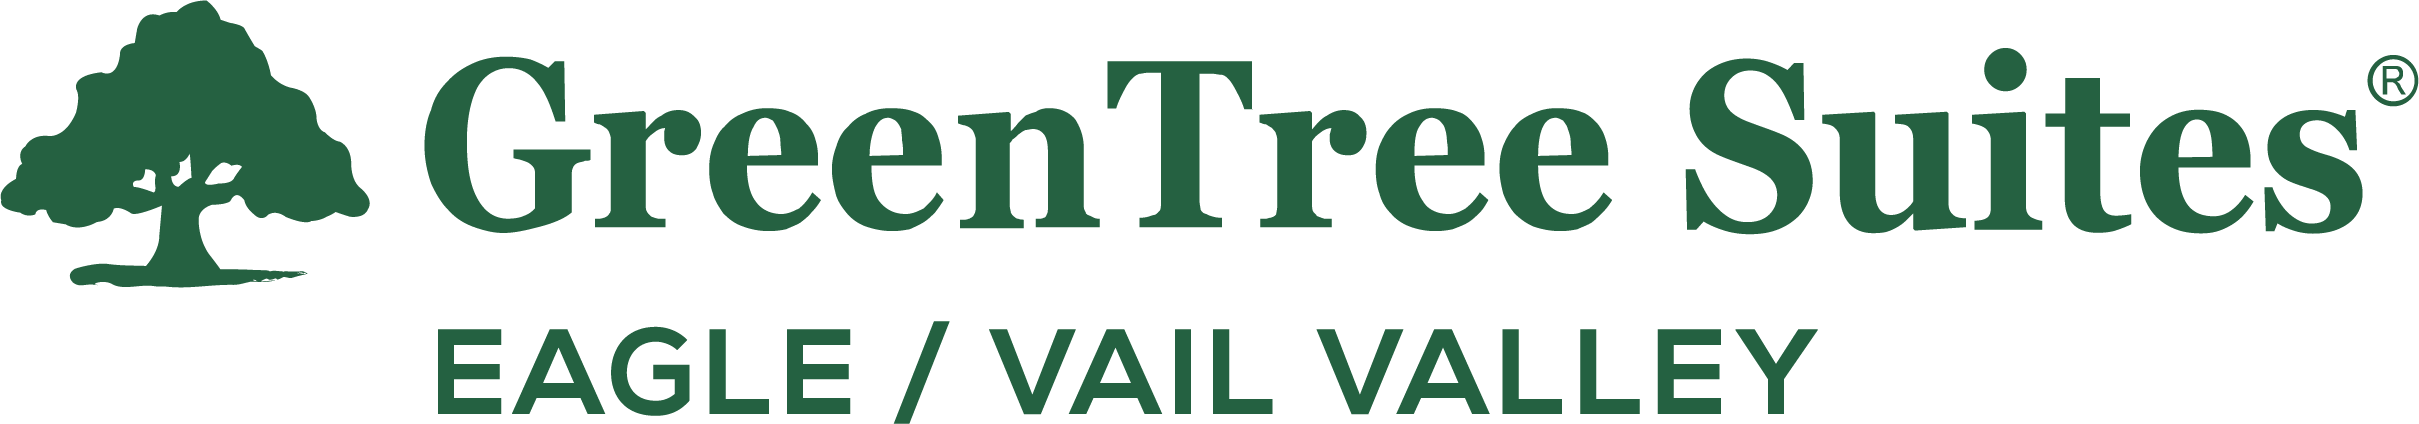 GreenTree Extended Stay Eagle/Vail Valley